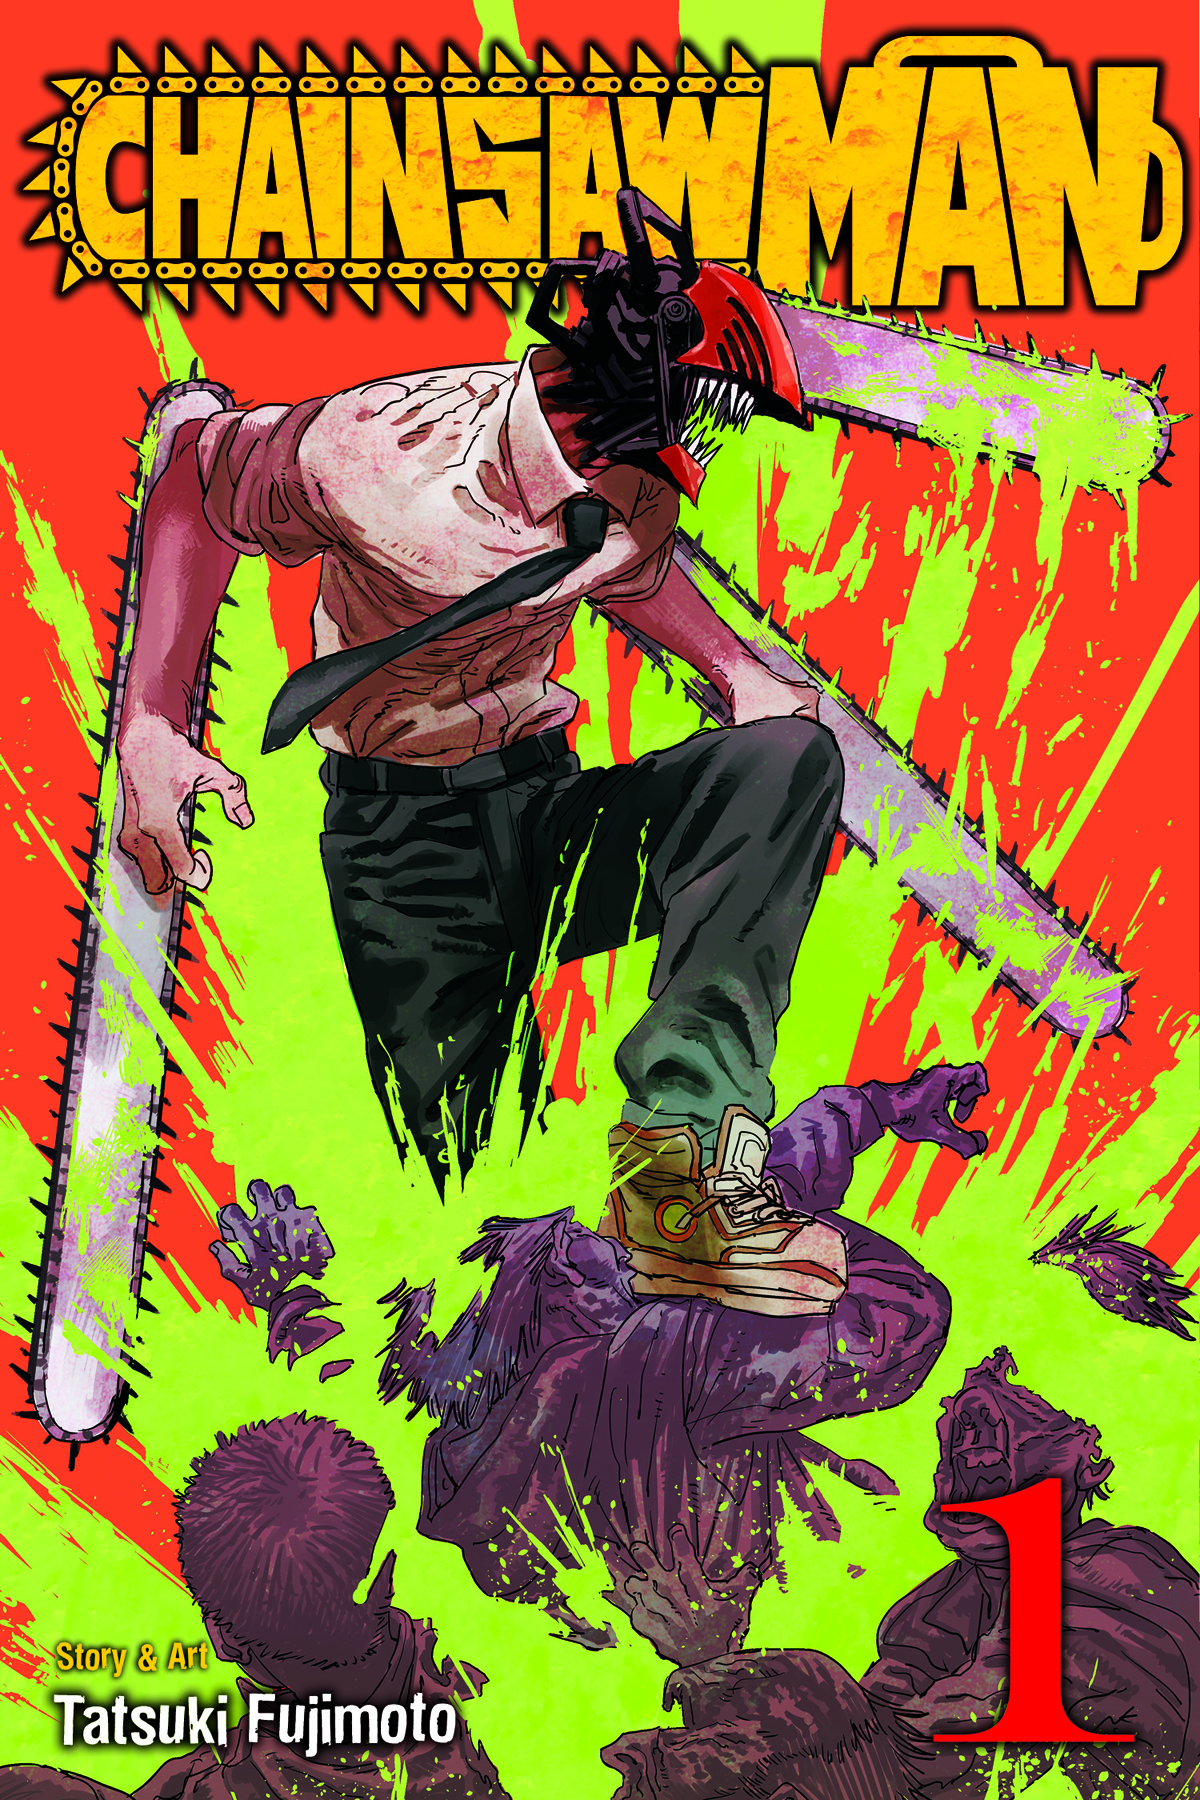 A man with a chainsaw for a head, wearing a button up and a tie, ripping through several people